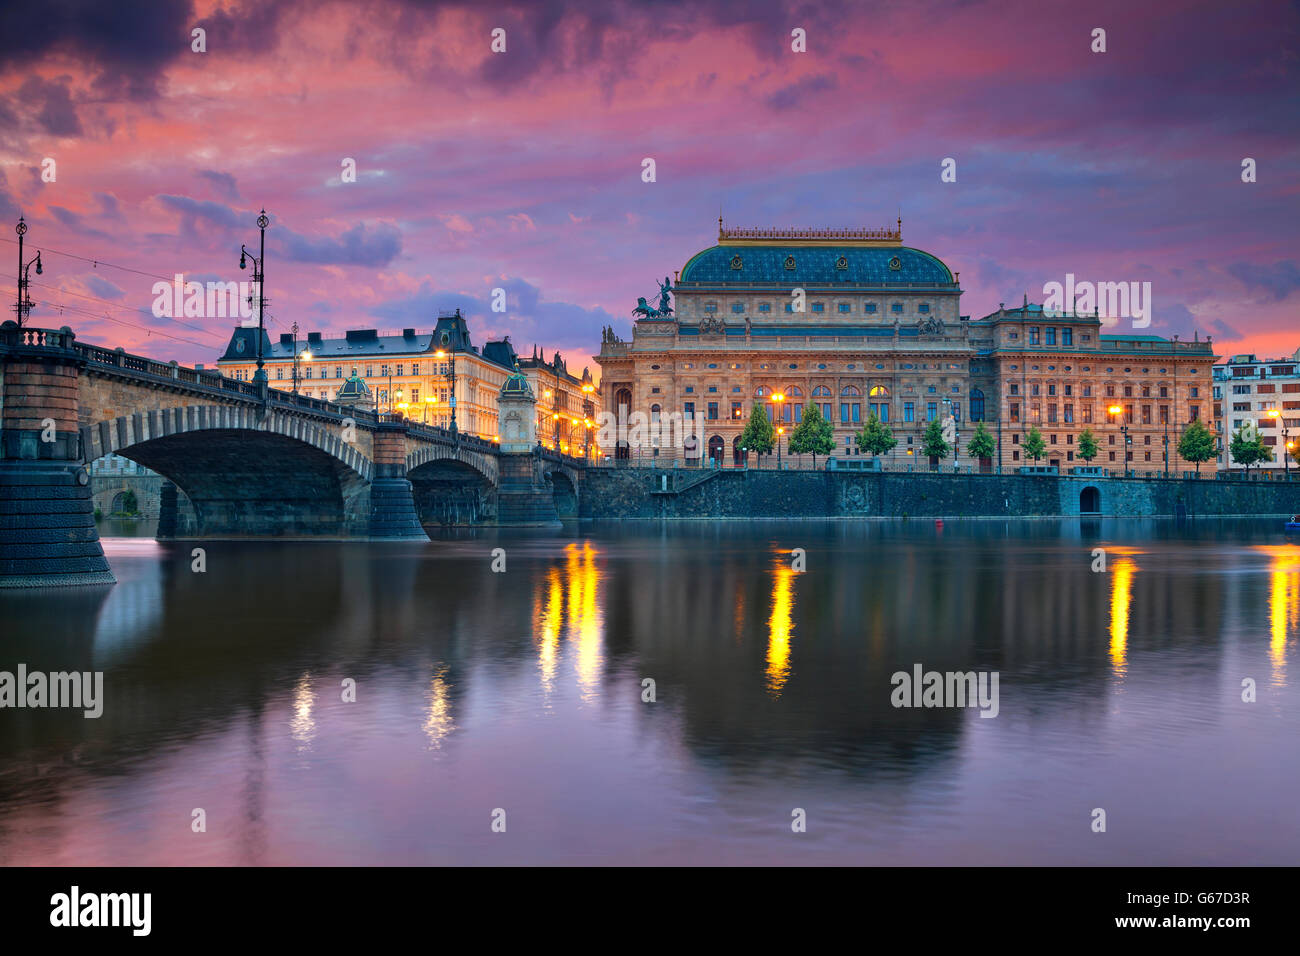 Prague. Image of Prague riverside with reflection of the city in Vltava River and National Theatre. - Stock Image